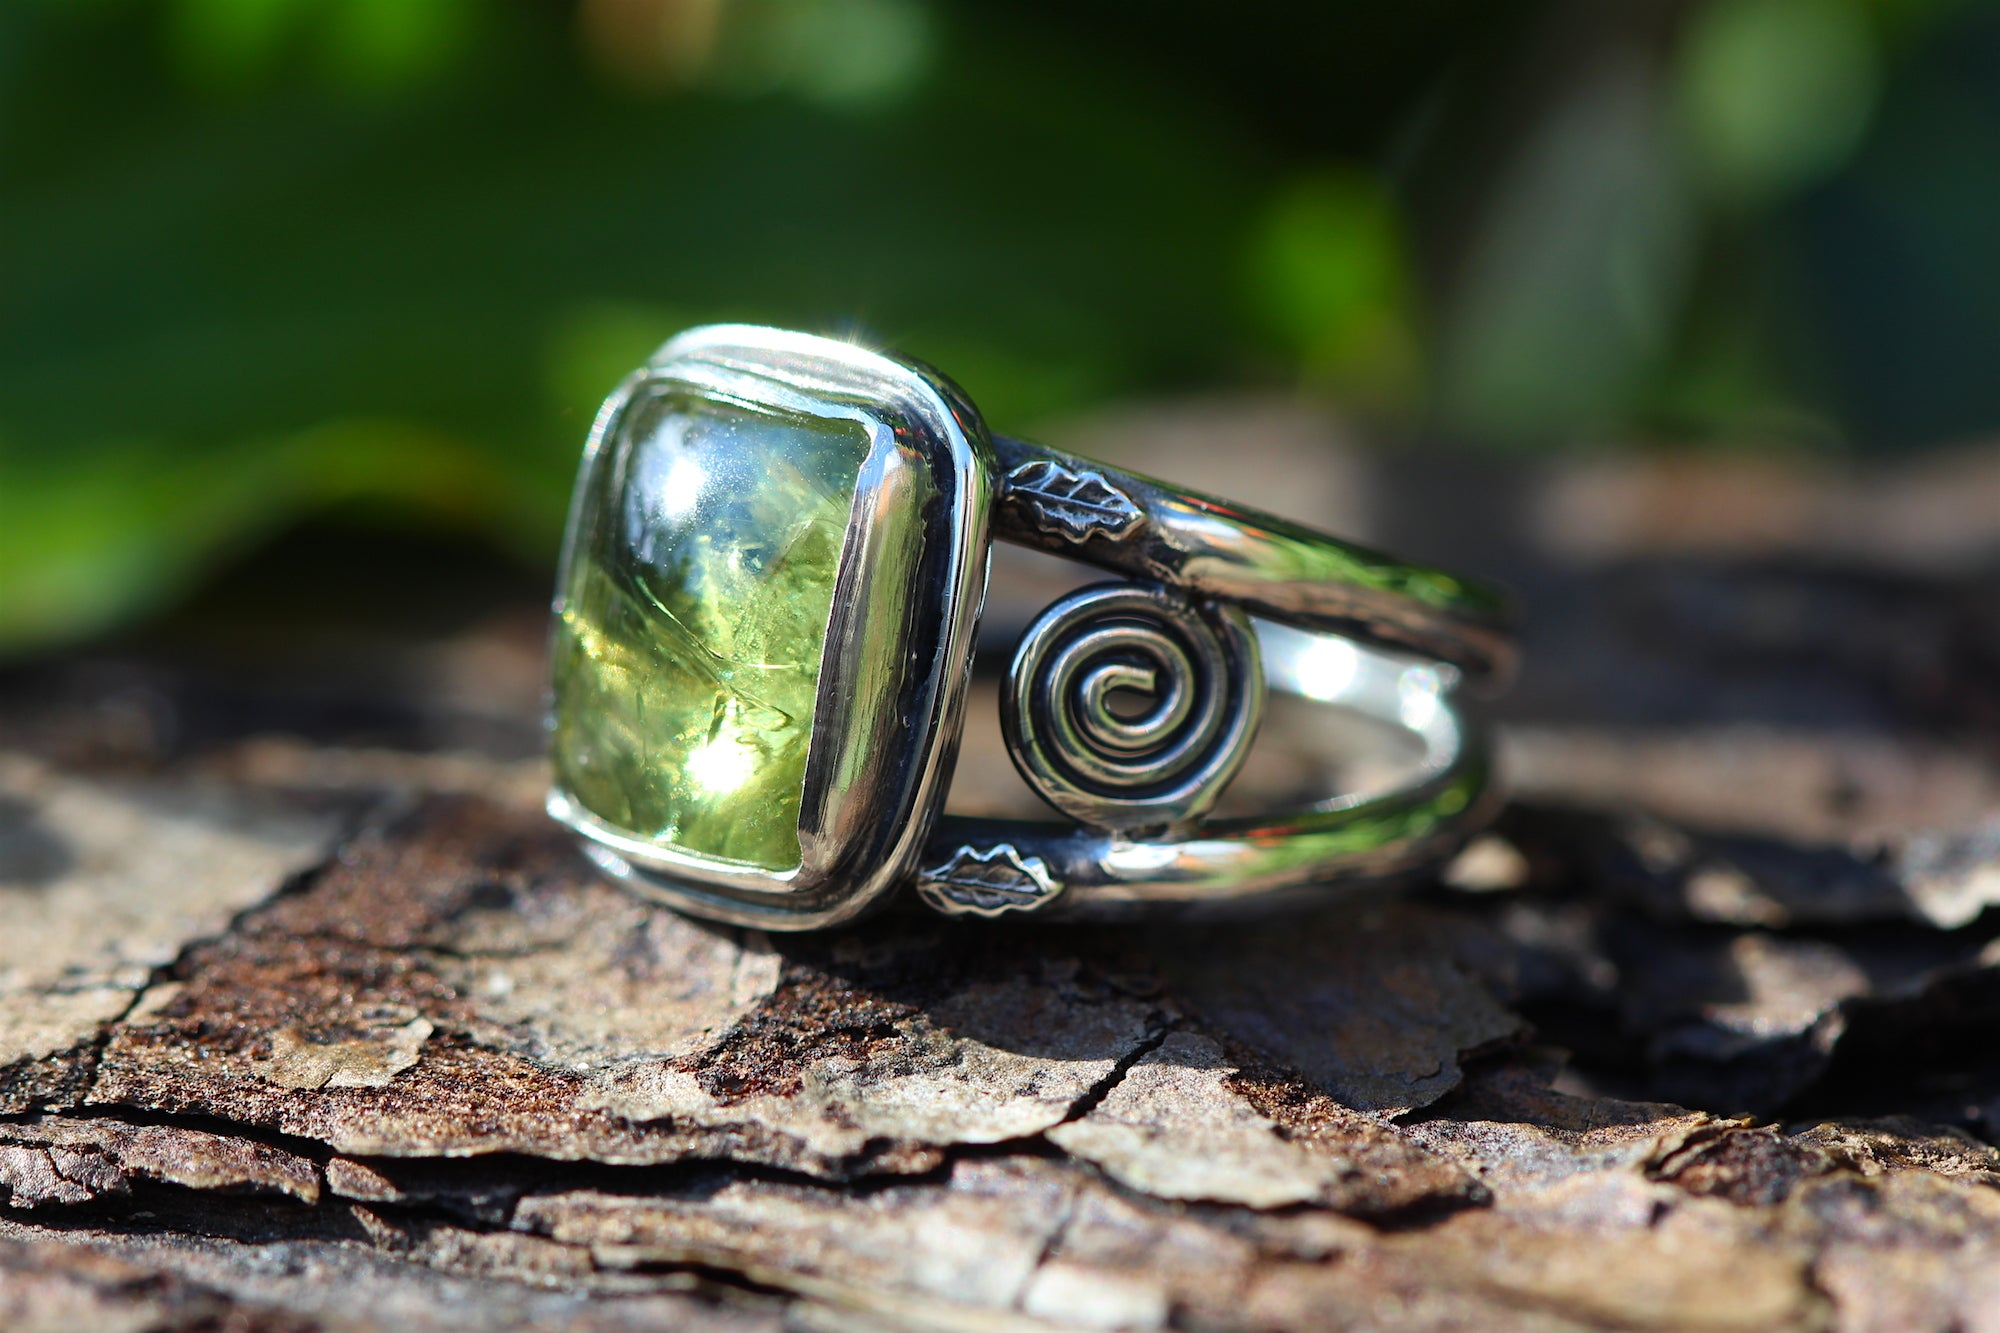 HEARTLANDS Sterling silver Ring with Peridot (UK Size N 1/2 or US size 6 3/4)